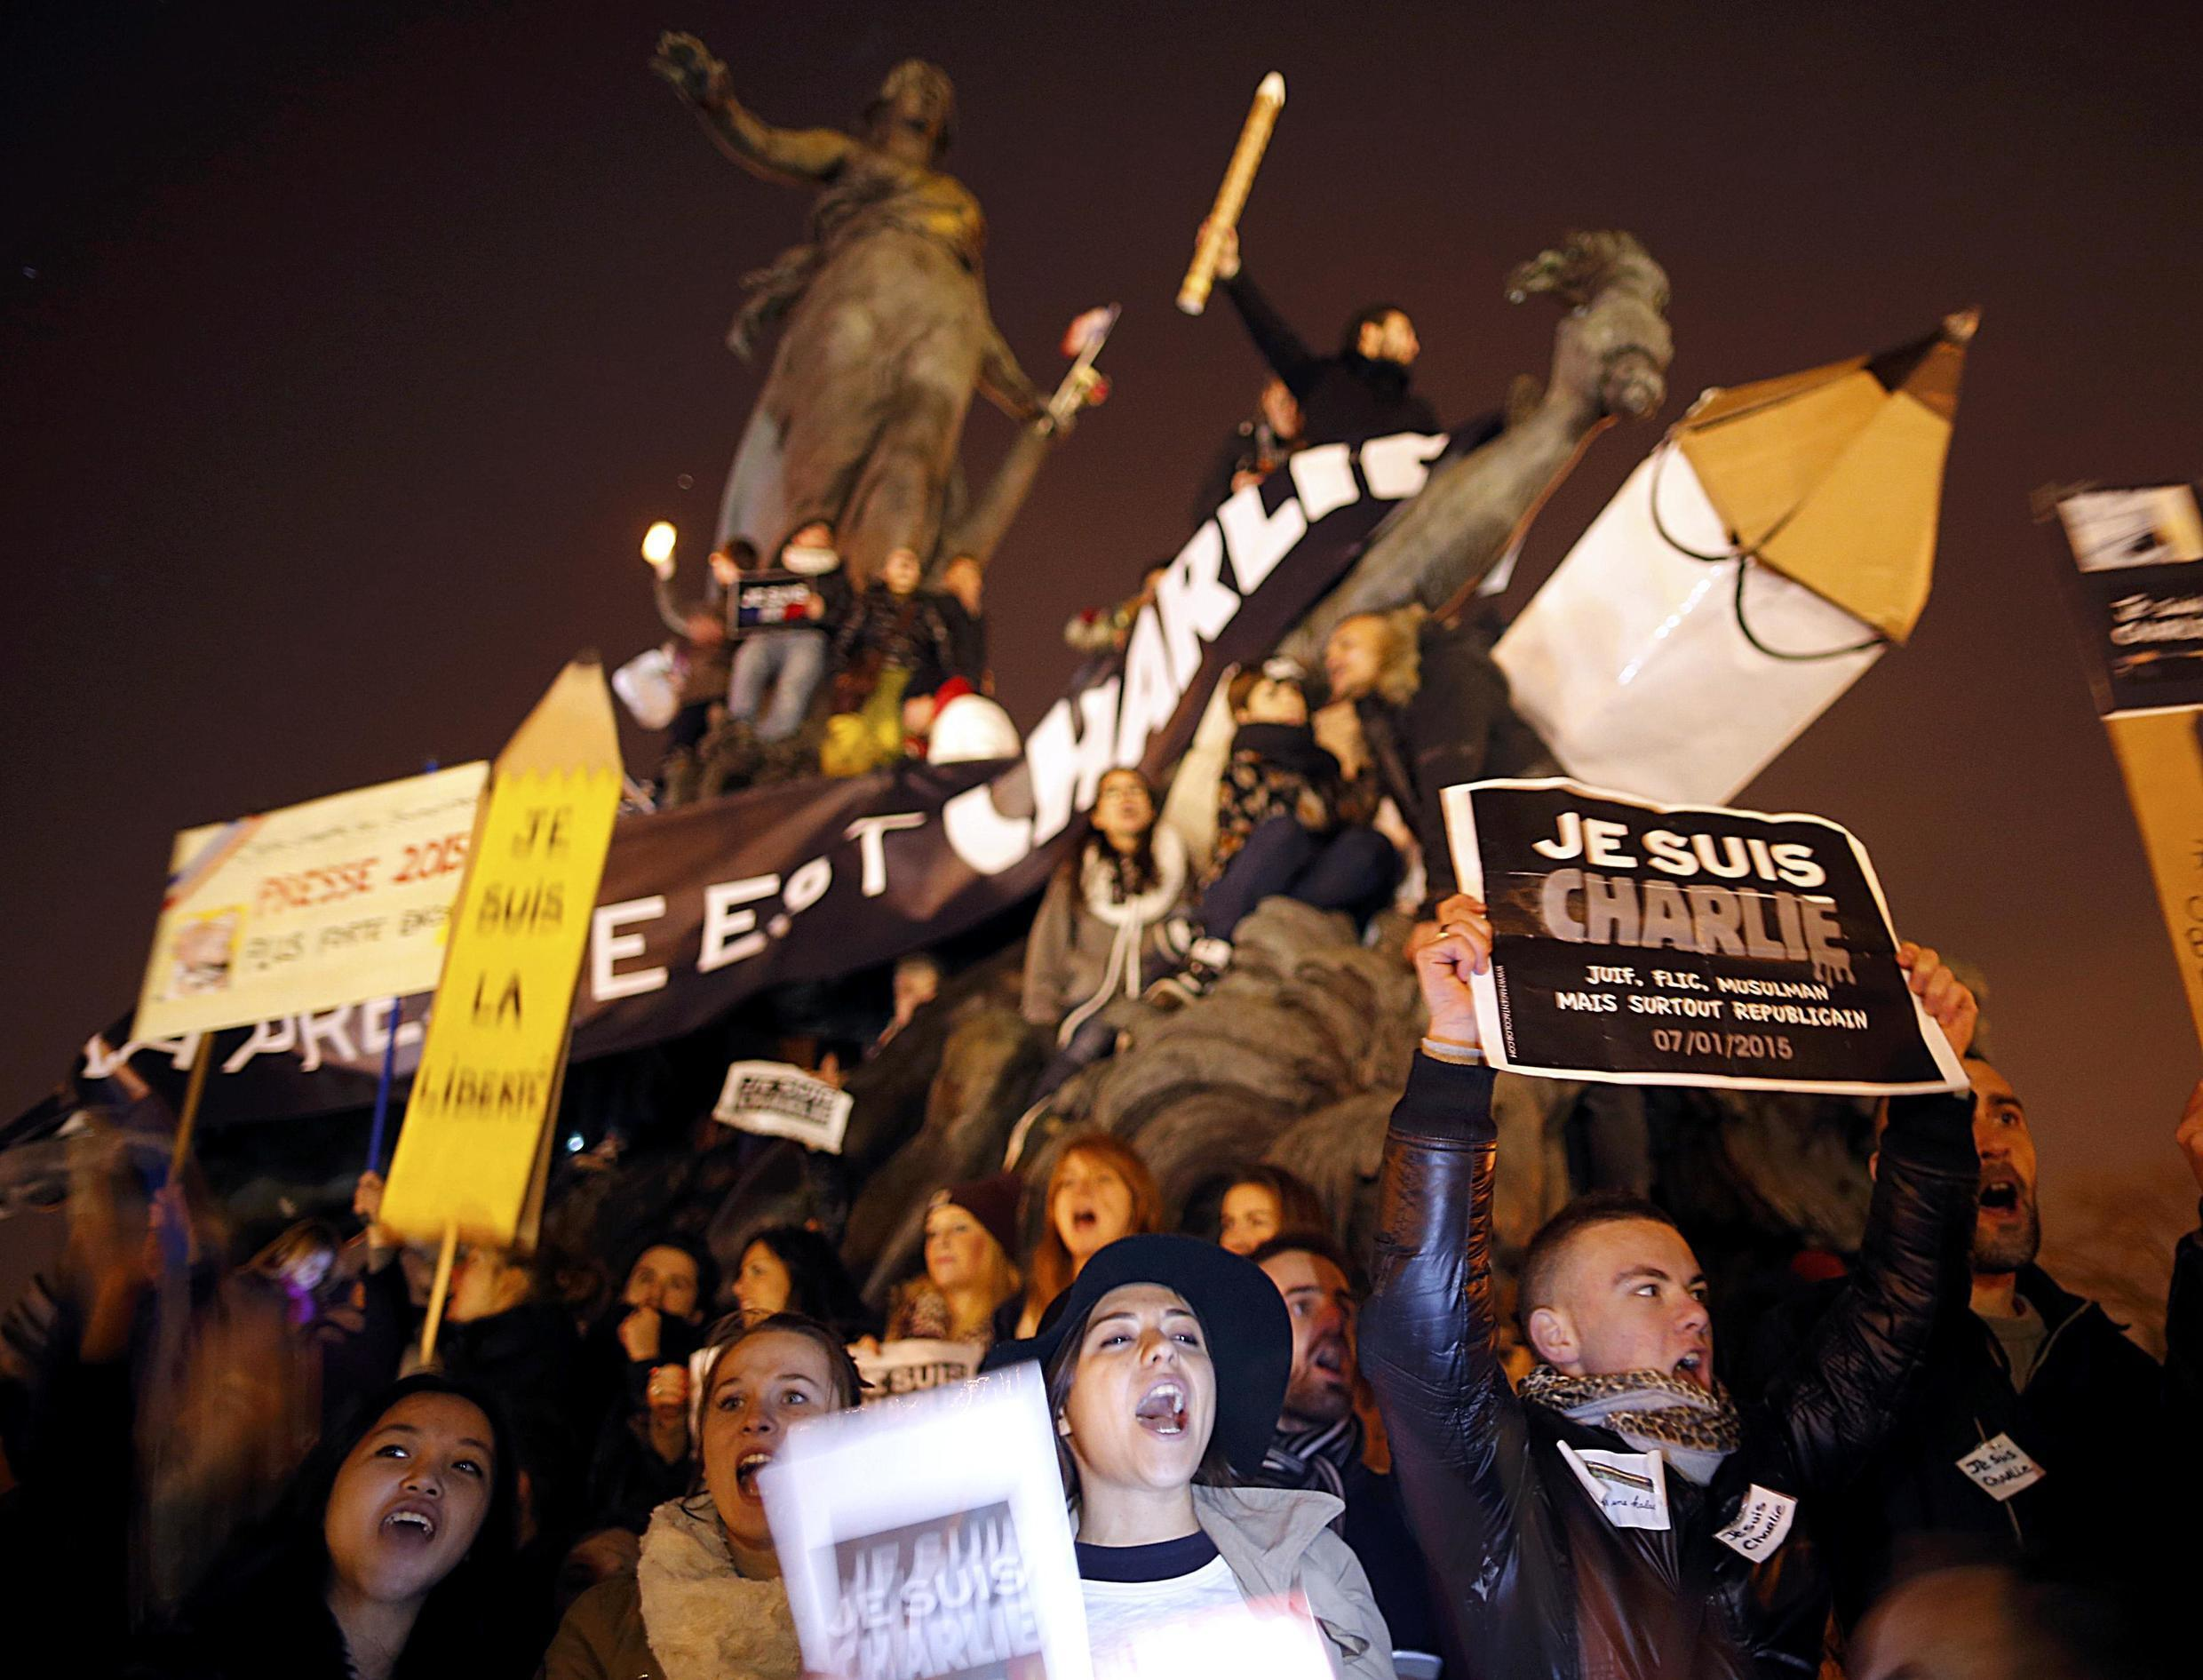 Protesters on Sunday's Charlie Hebdo solidarity march